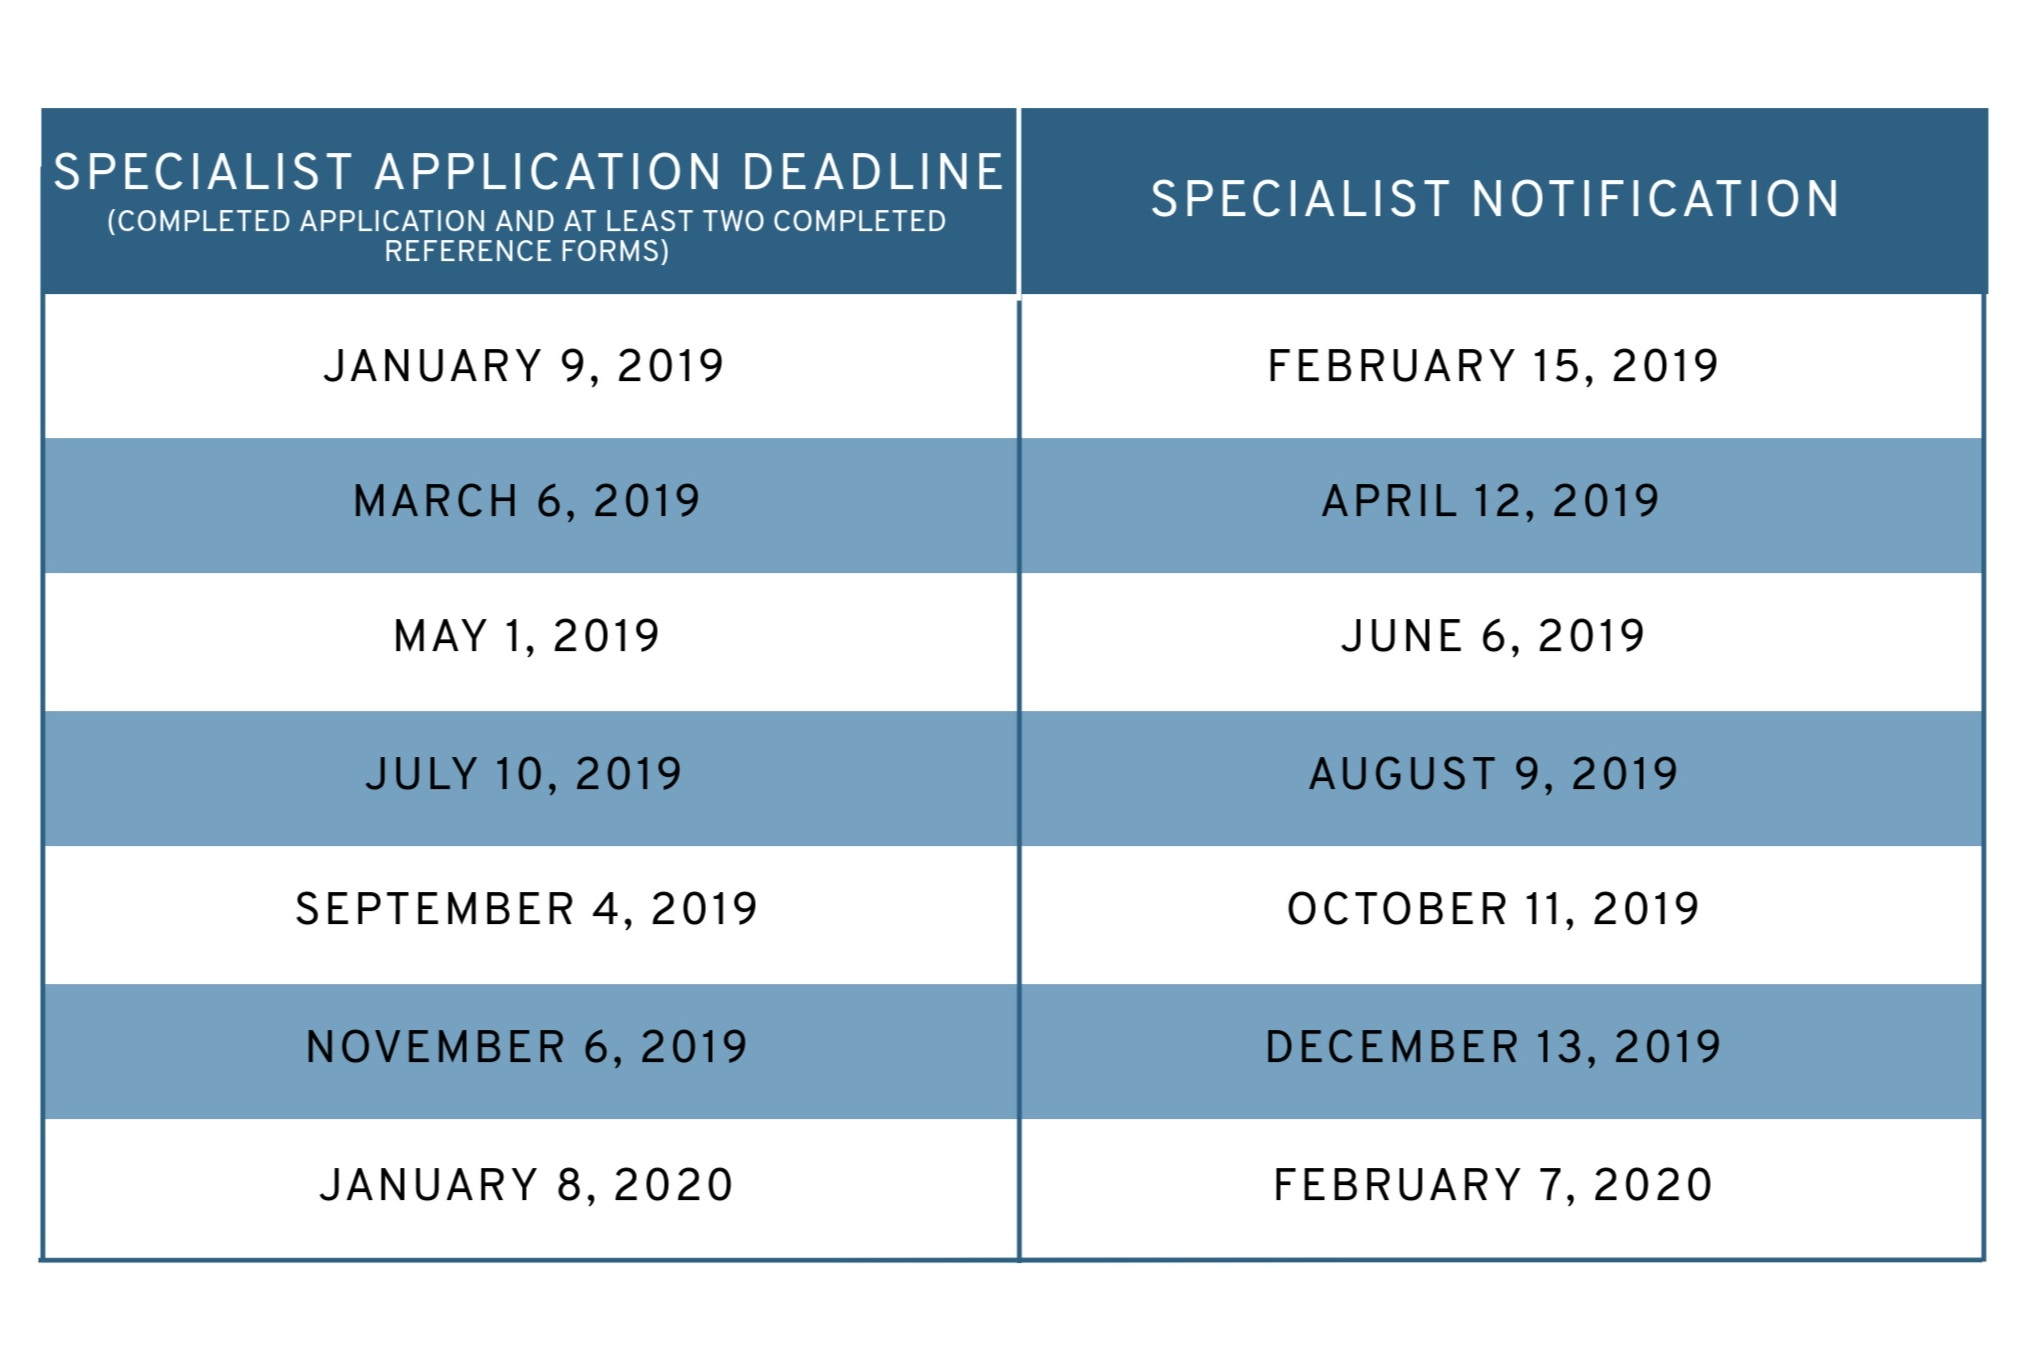 A graphic which provides upcoming peer review cycle deadlines  Specialist Application: July 10, 2019 Specialist Notification: August 9, 2019; Specialist Application: September 4, 2019 Specialist Notification: October 11, 2019; Specialist Application: November 9, 2019 Specialist Notification: December 13, 2019; Specialist Application: January 8, 2020 Specialist Notification: February 7, 2020